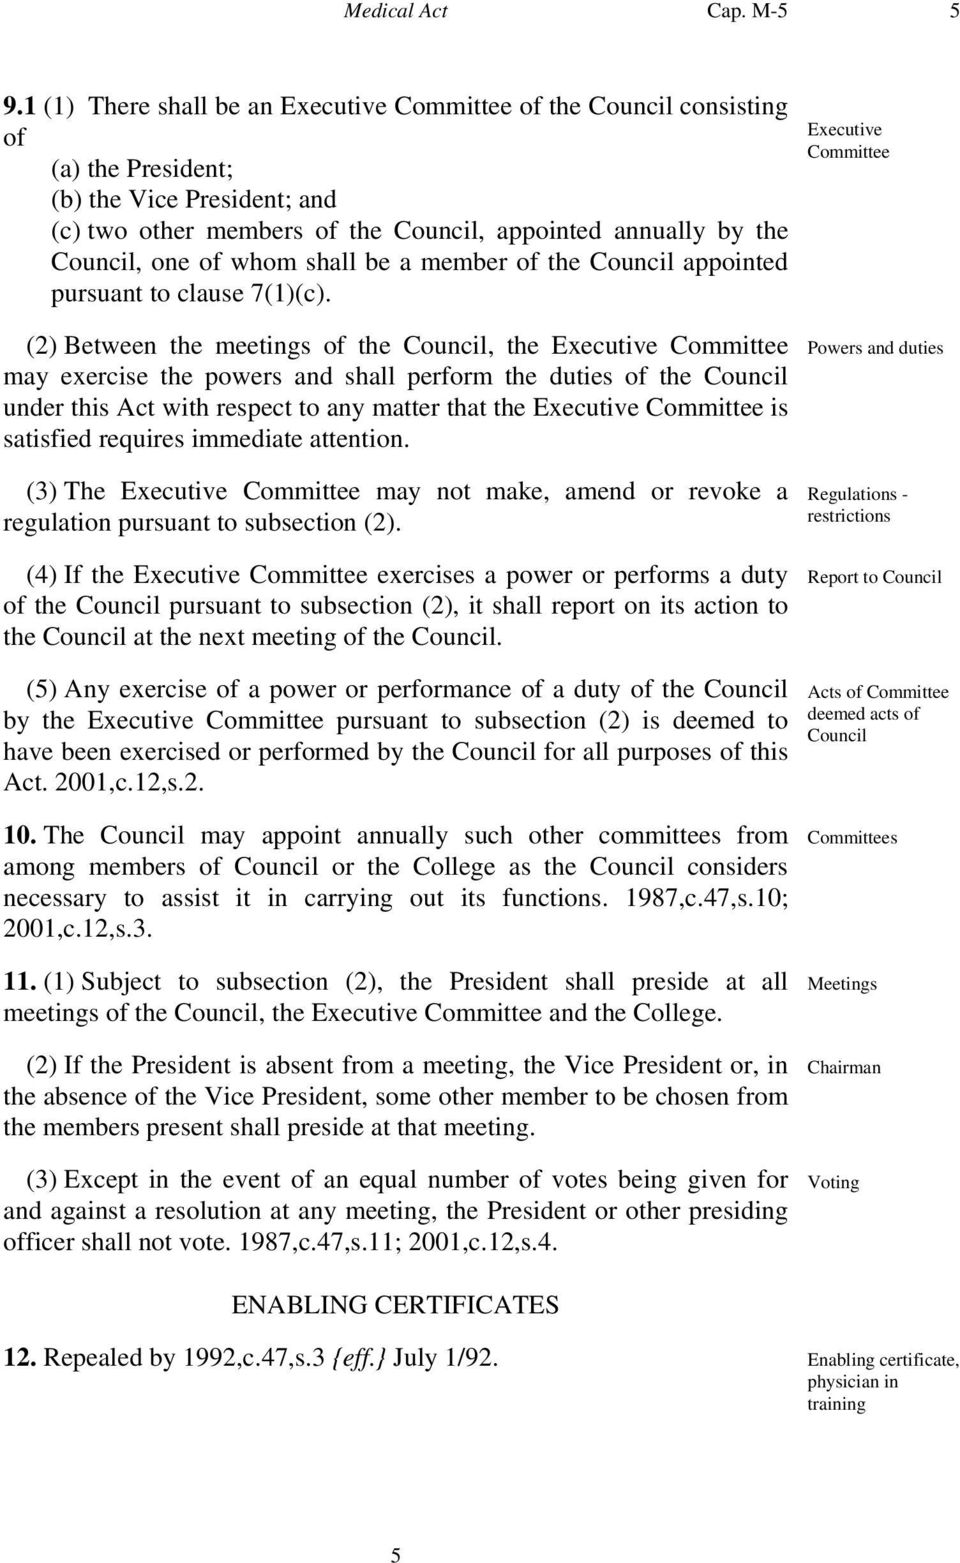 whom shall be a member of the Council appointed pursuant to clause 7(1)(c).